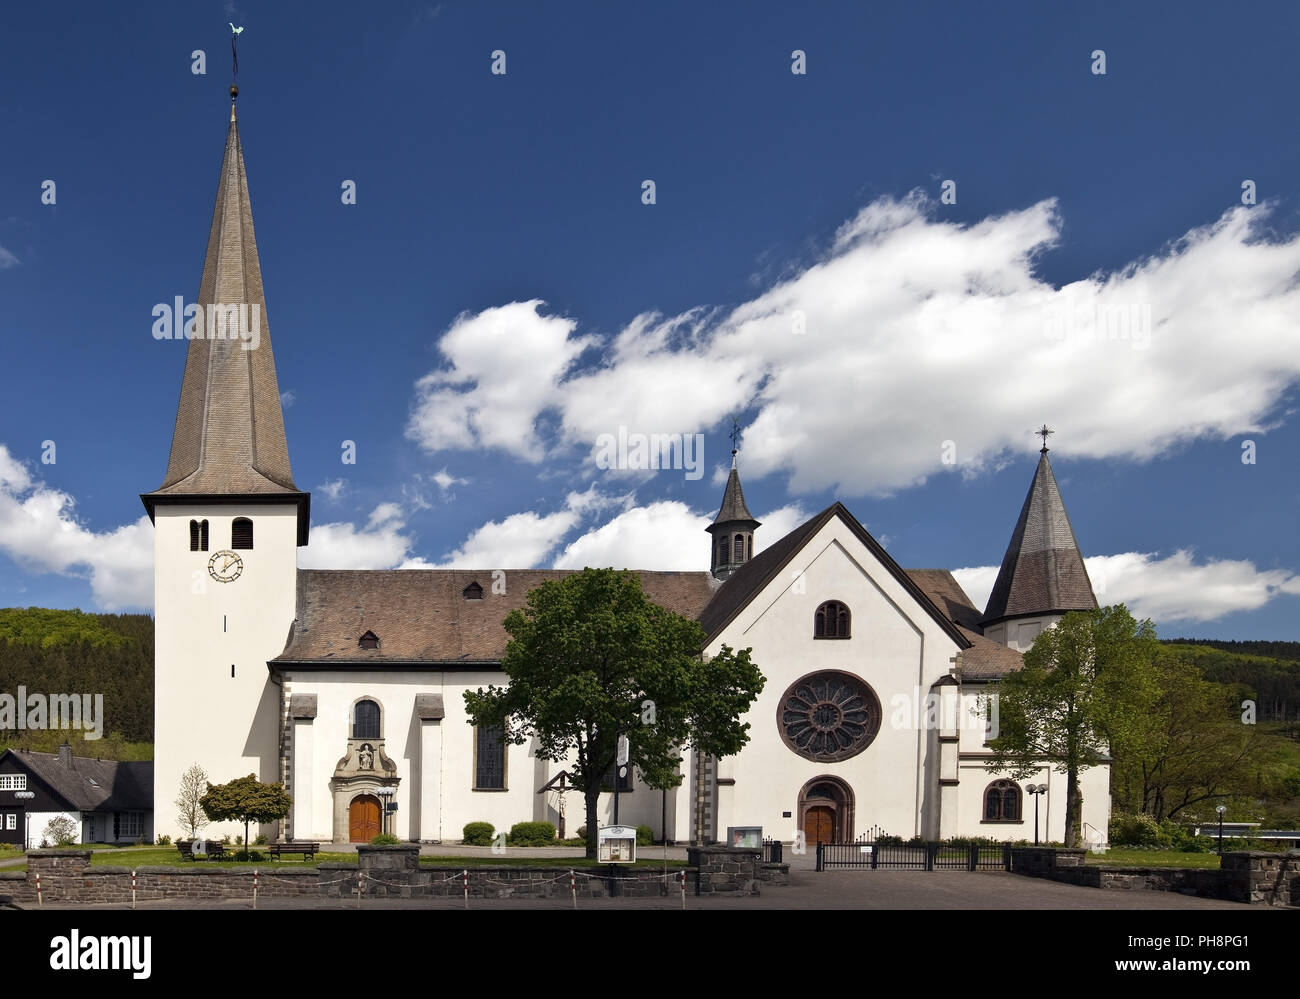 Parish Church of St Martin, Bigge, Olsberg - Stock Image